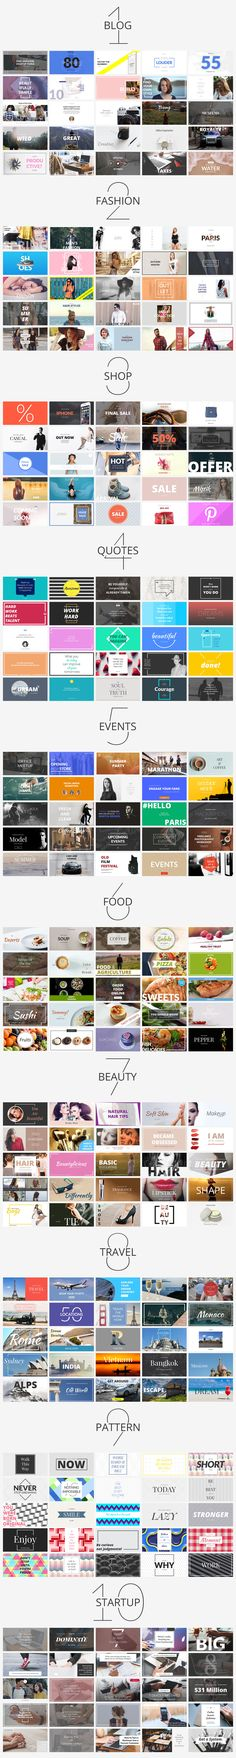 Massive Social Media Banners Pack by Web Donut on @creativemarket